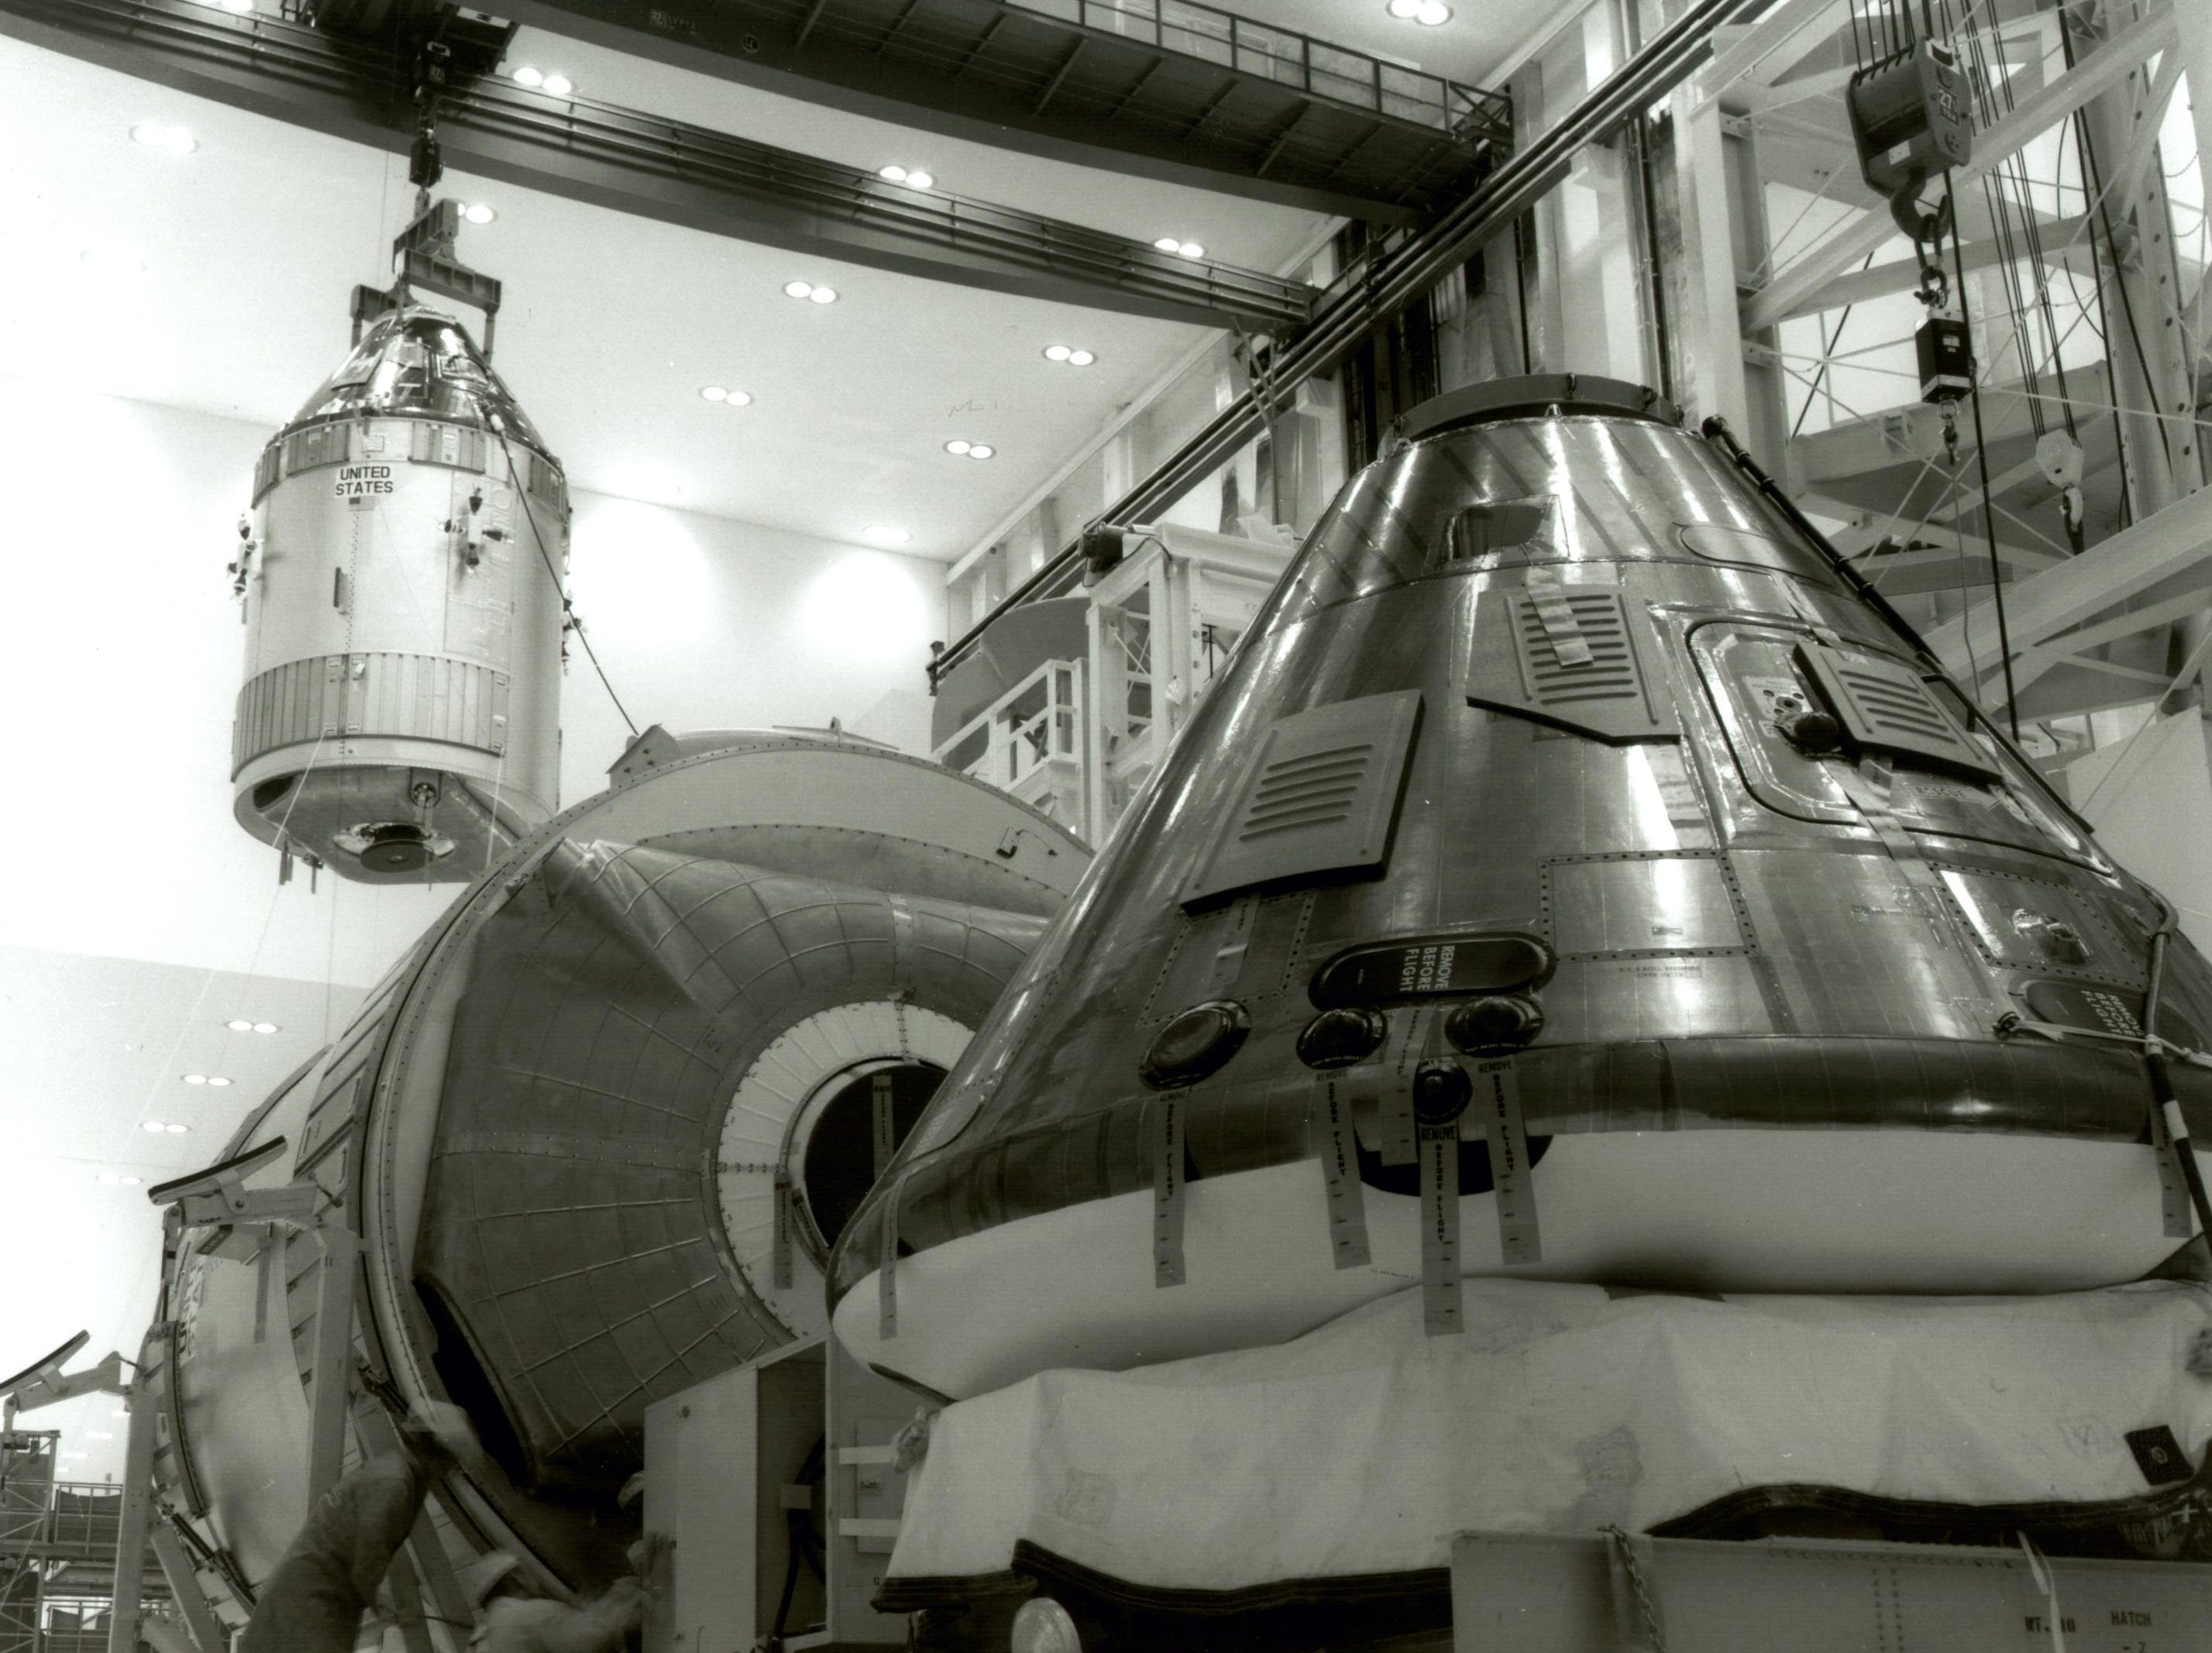 The command module and service module for the Apollo 11 mission are moved to the work stand in preparation for the first manned lunar landing.